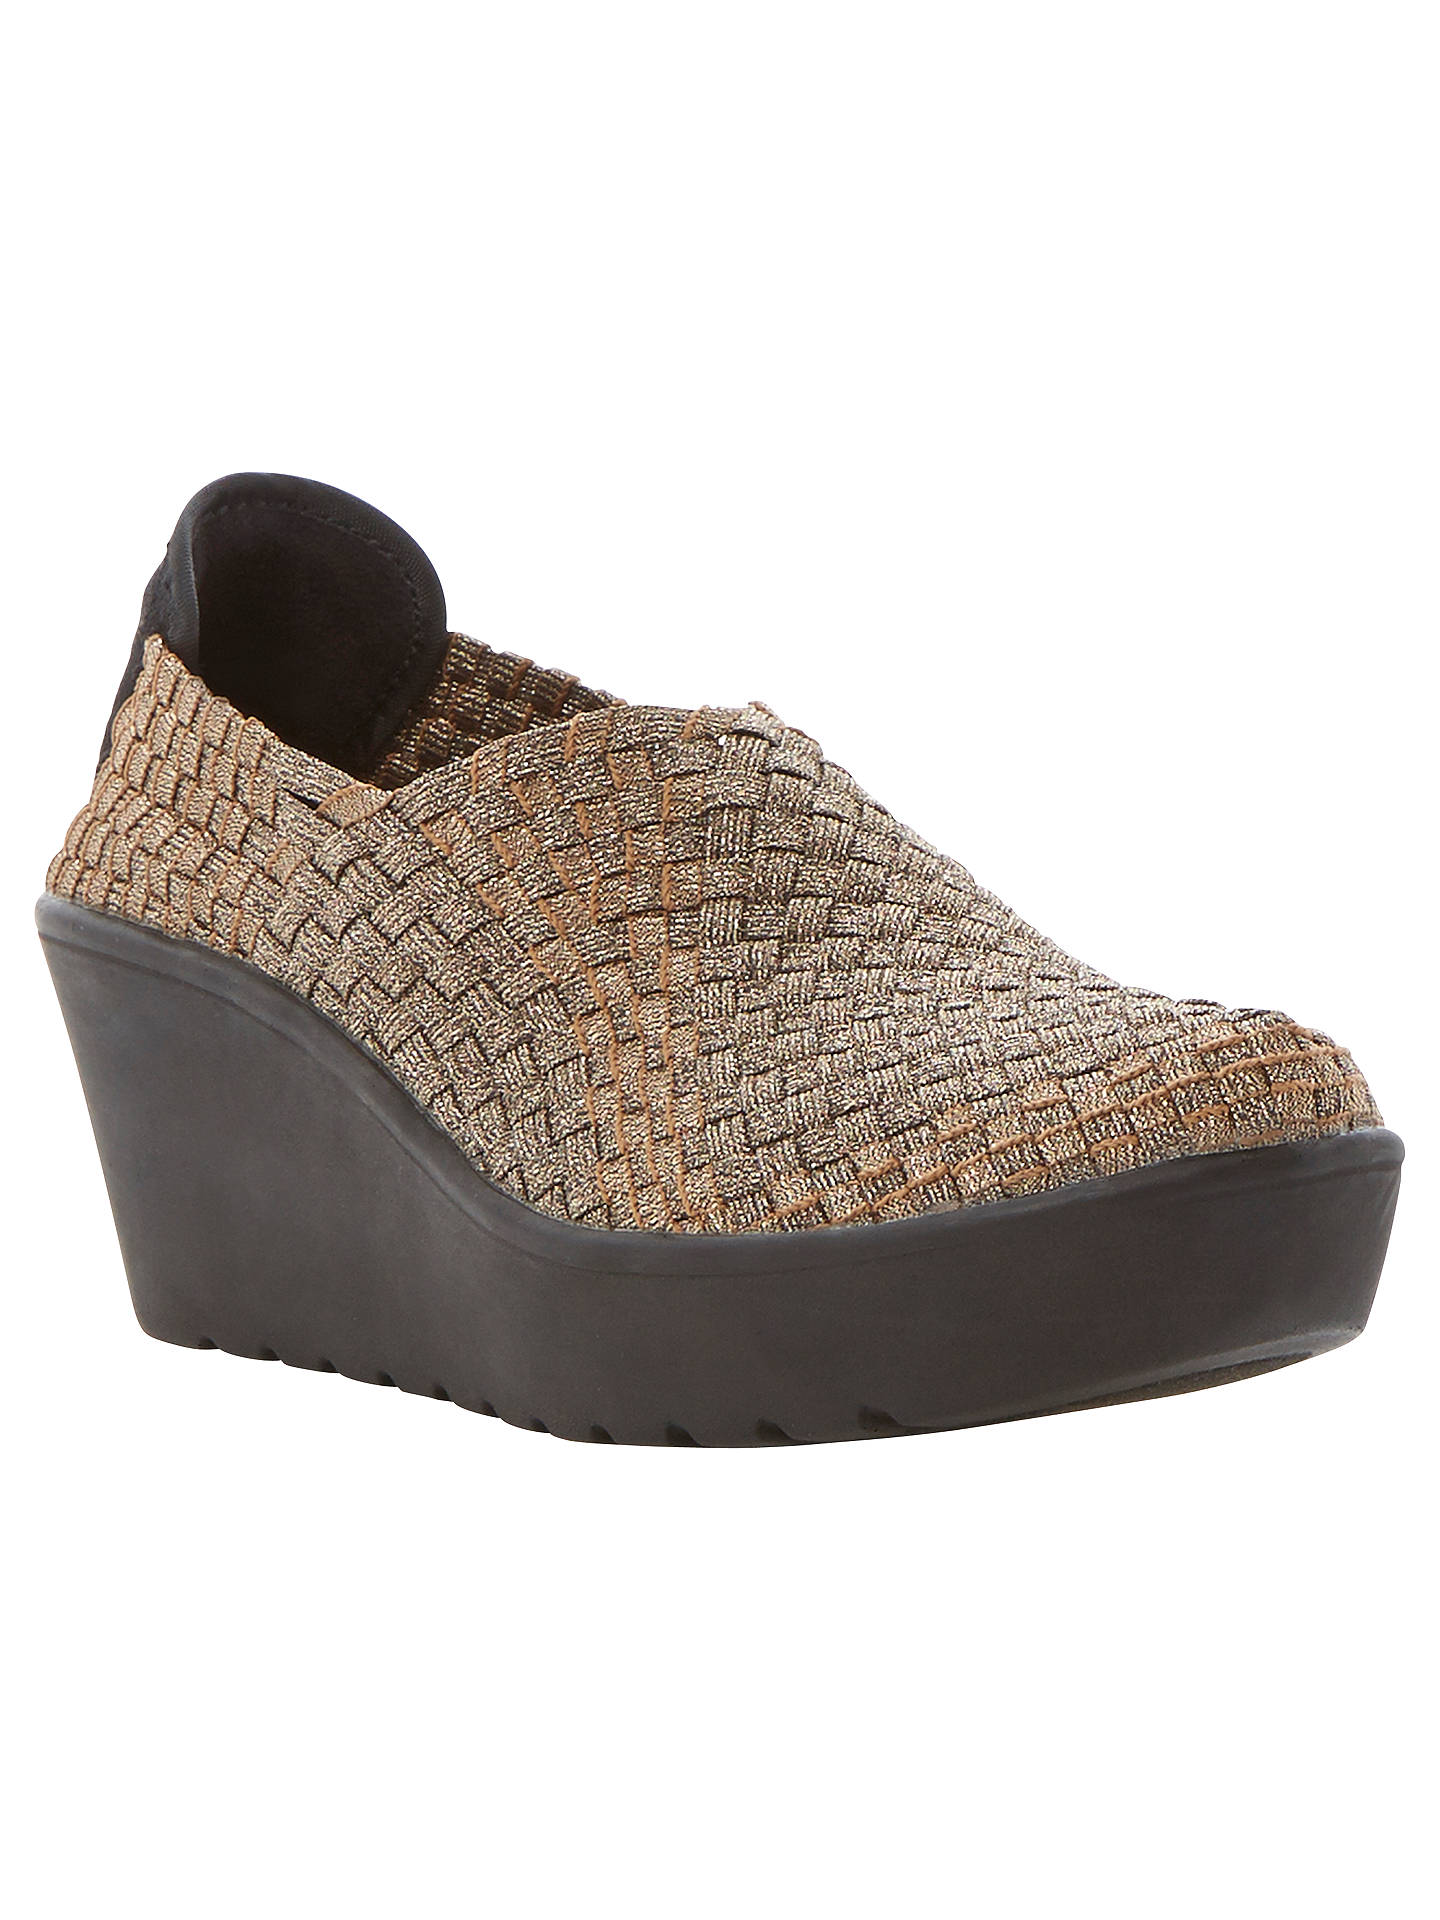 c58308afbf7 Steve Madden Betsi Wedge Shoes at John Lewis & Partners